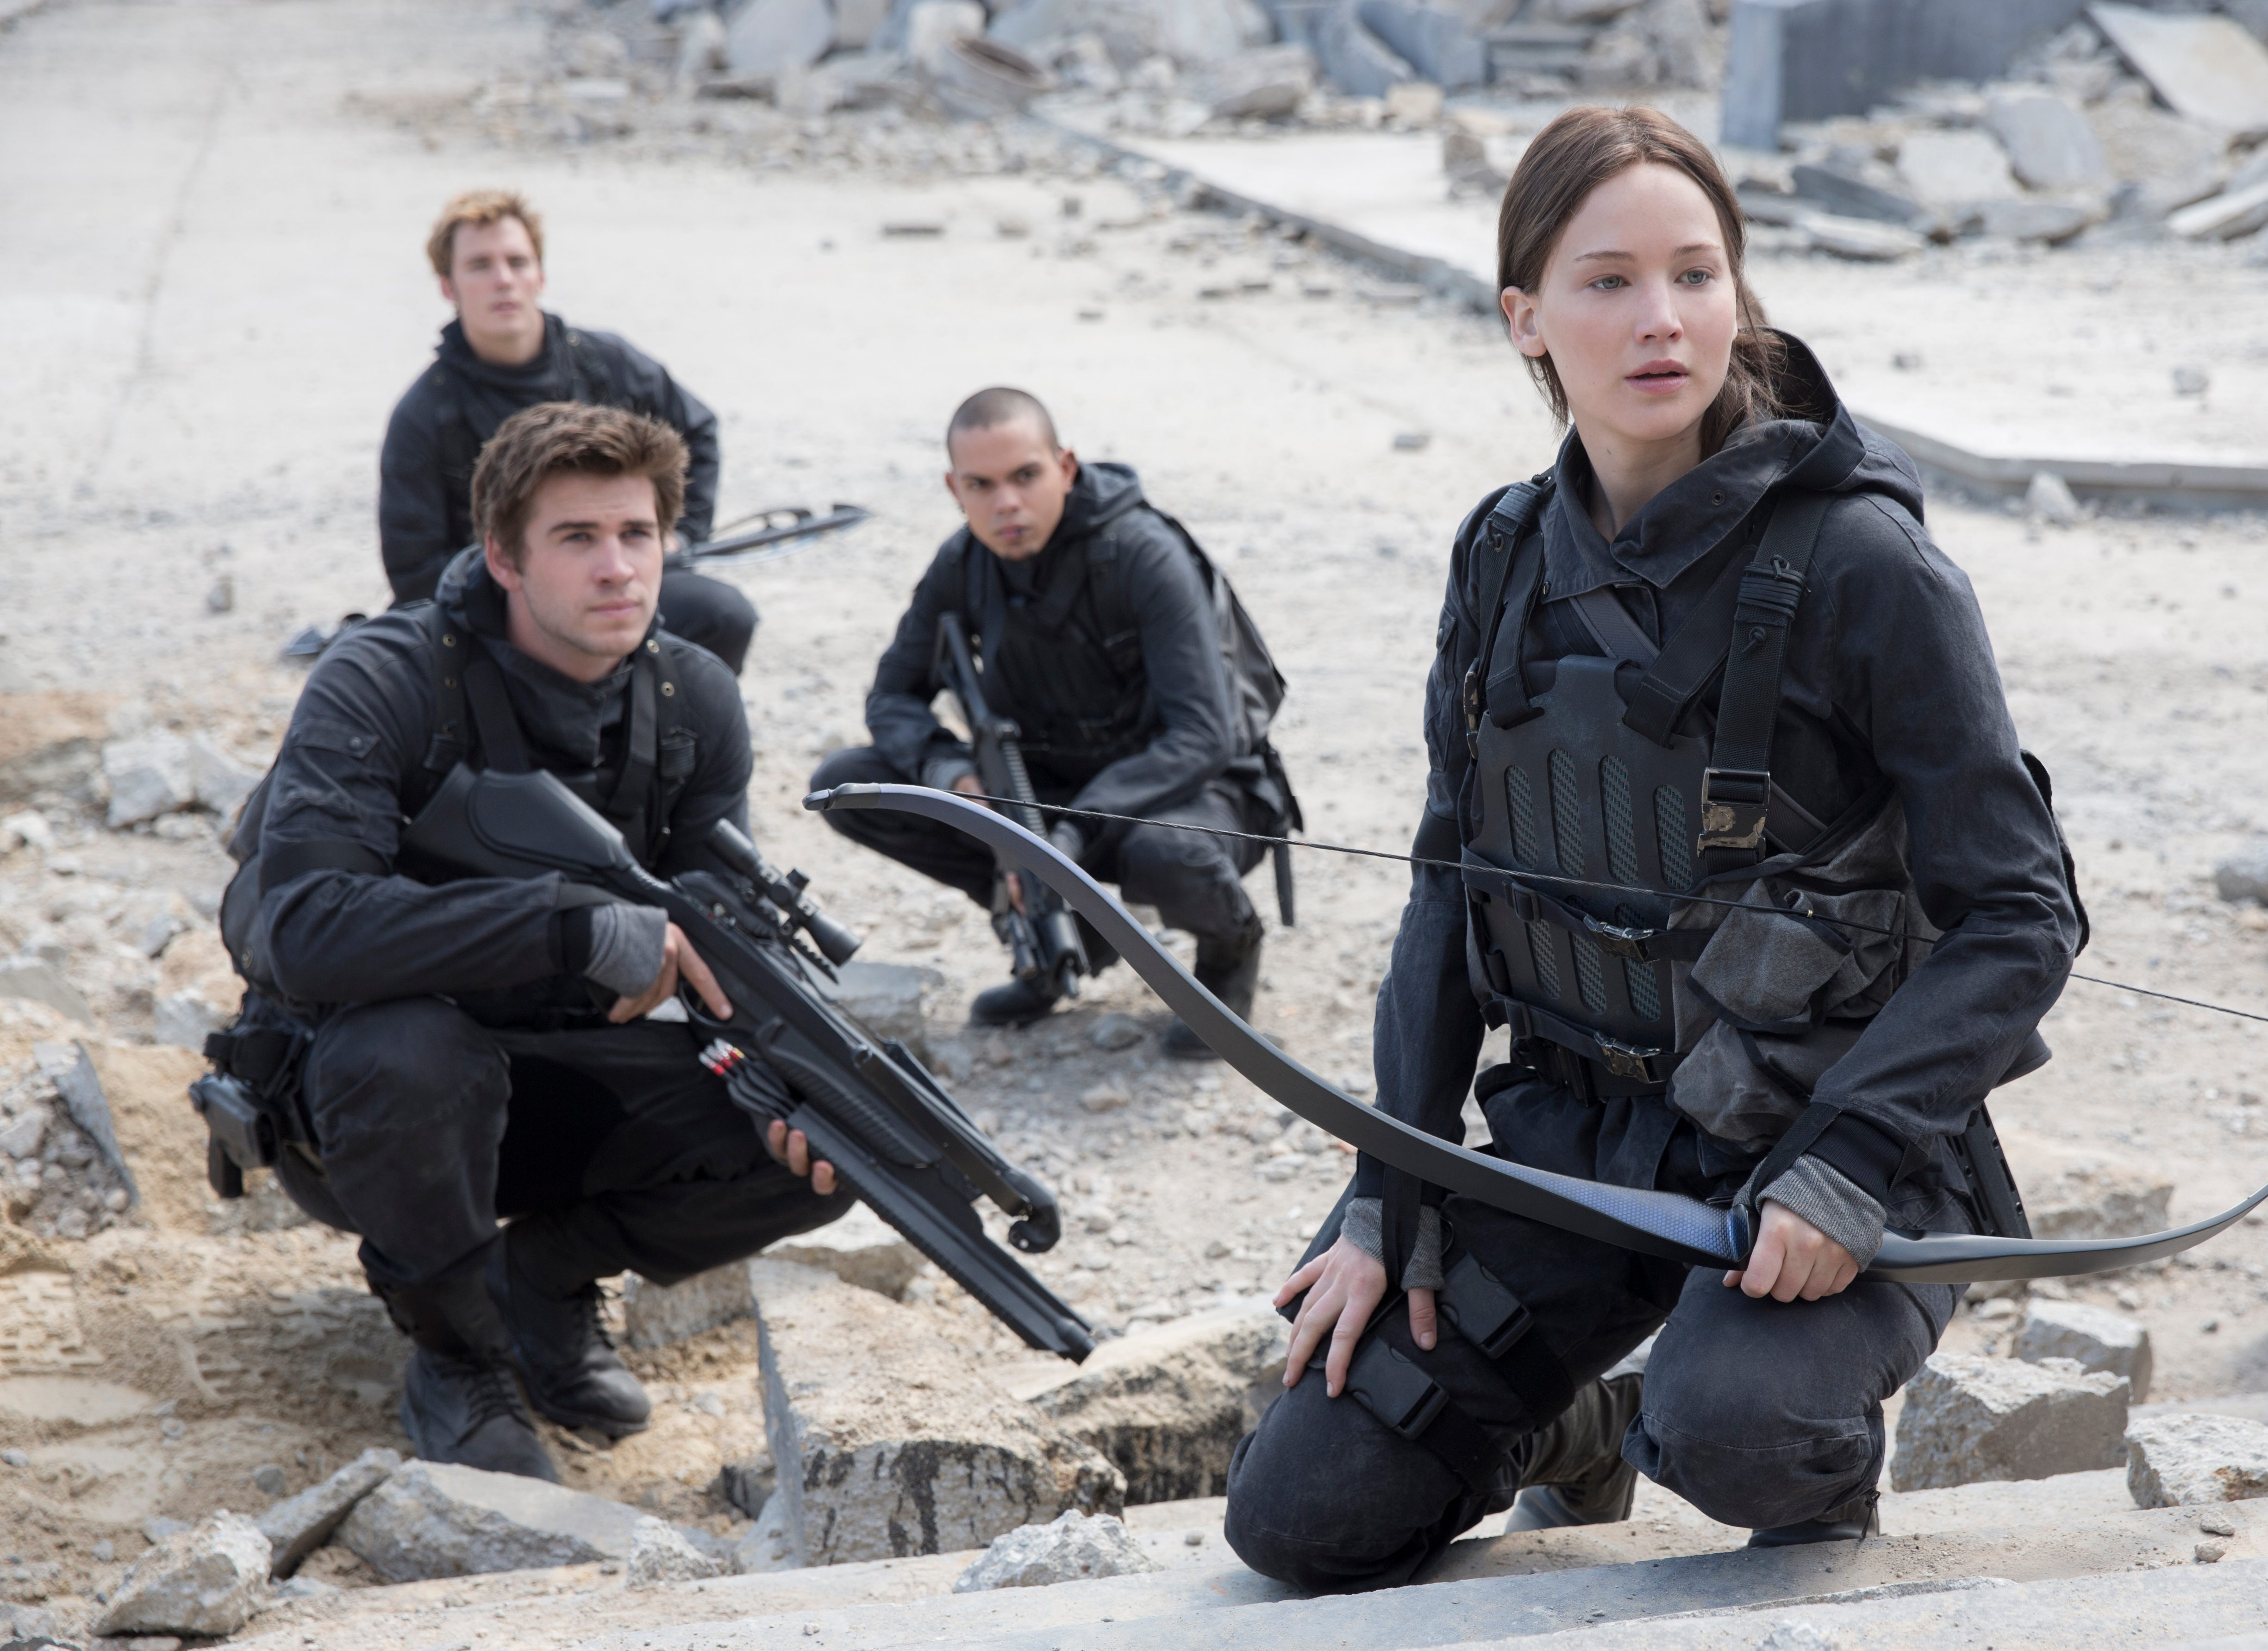 Who is gale from the hunger games dating